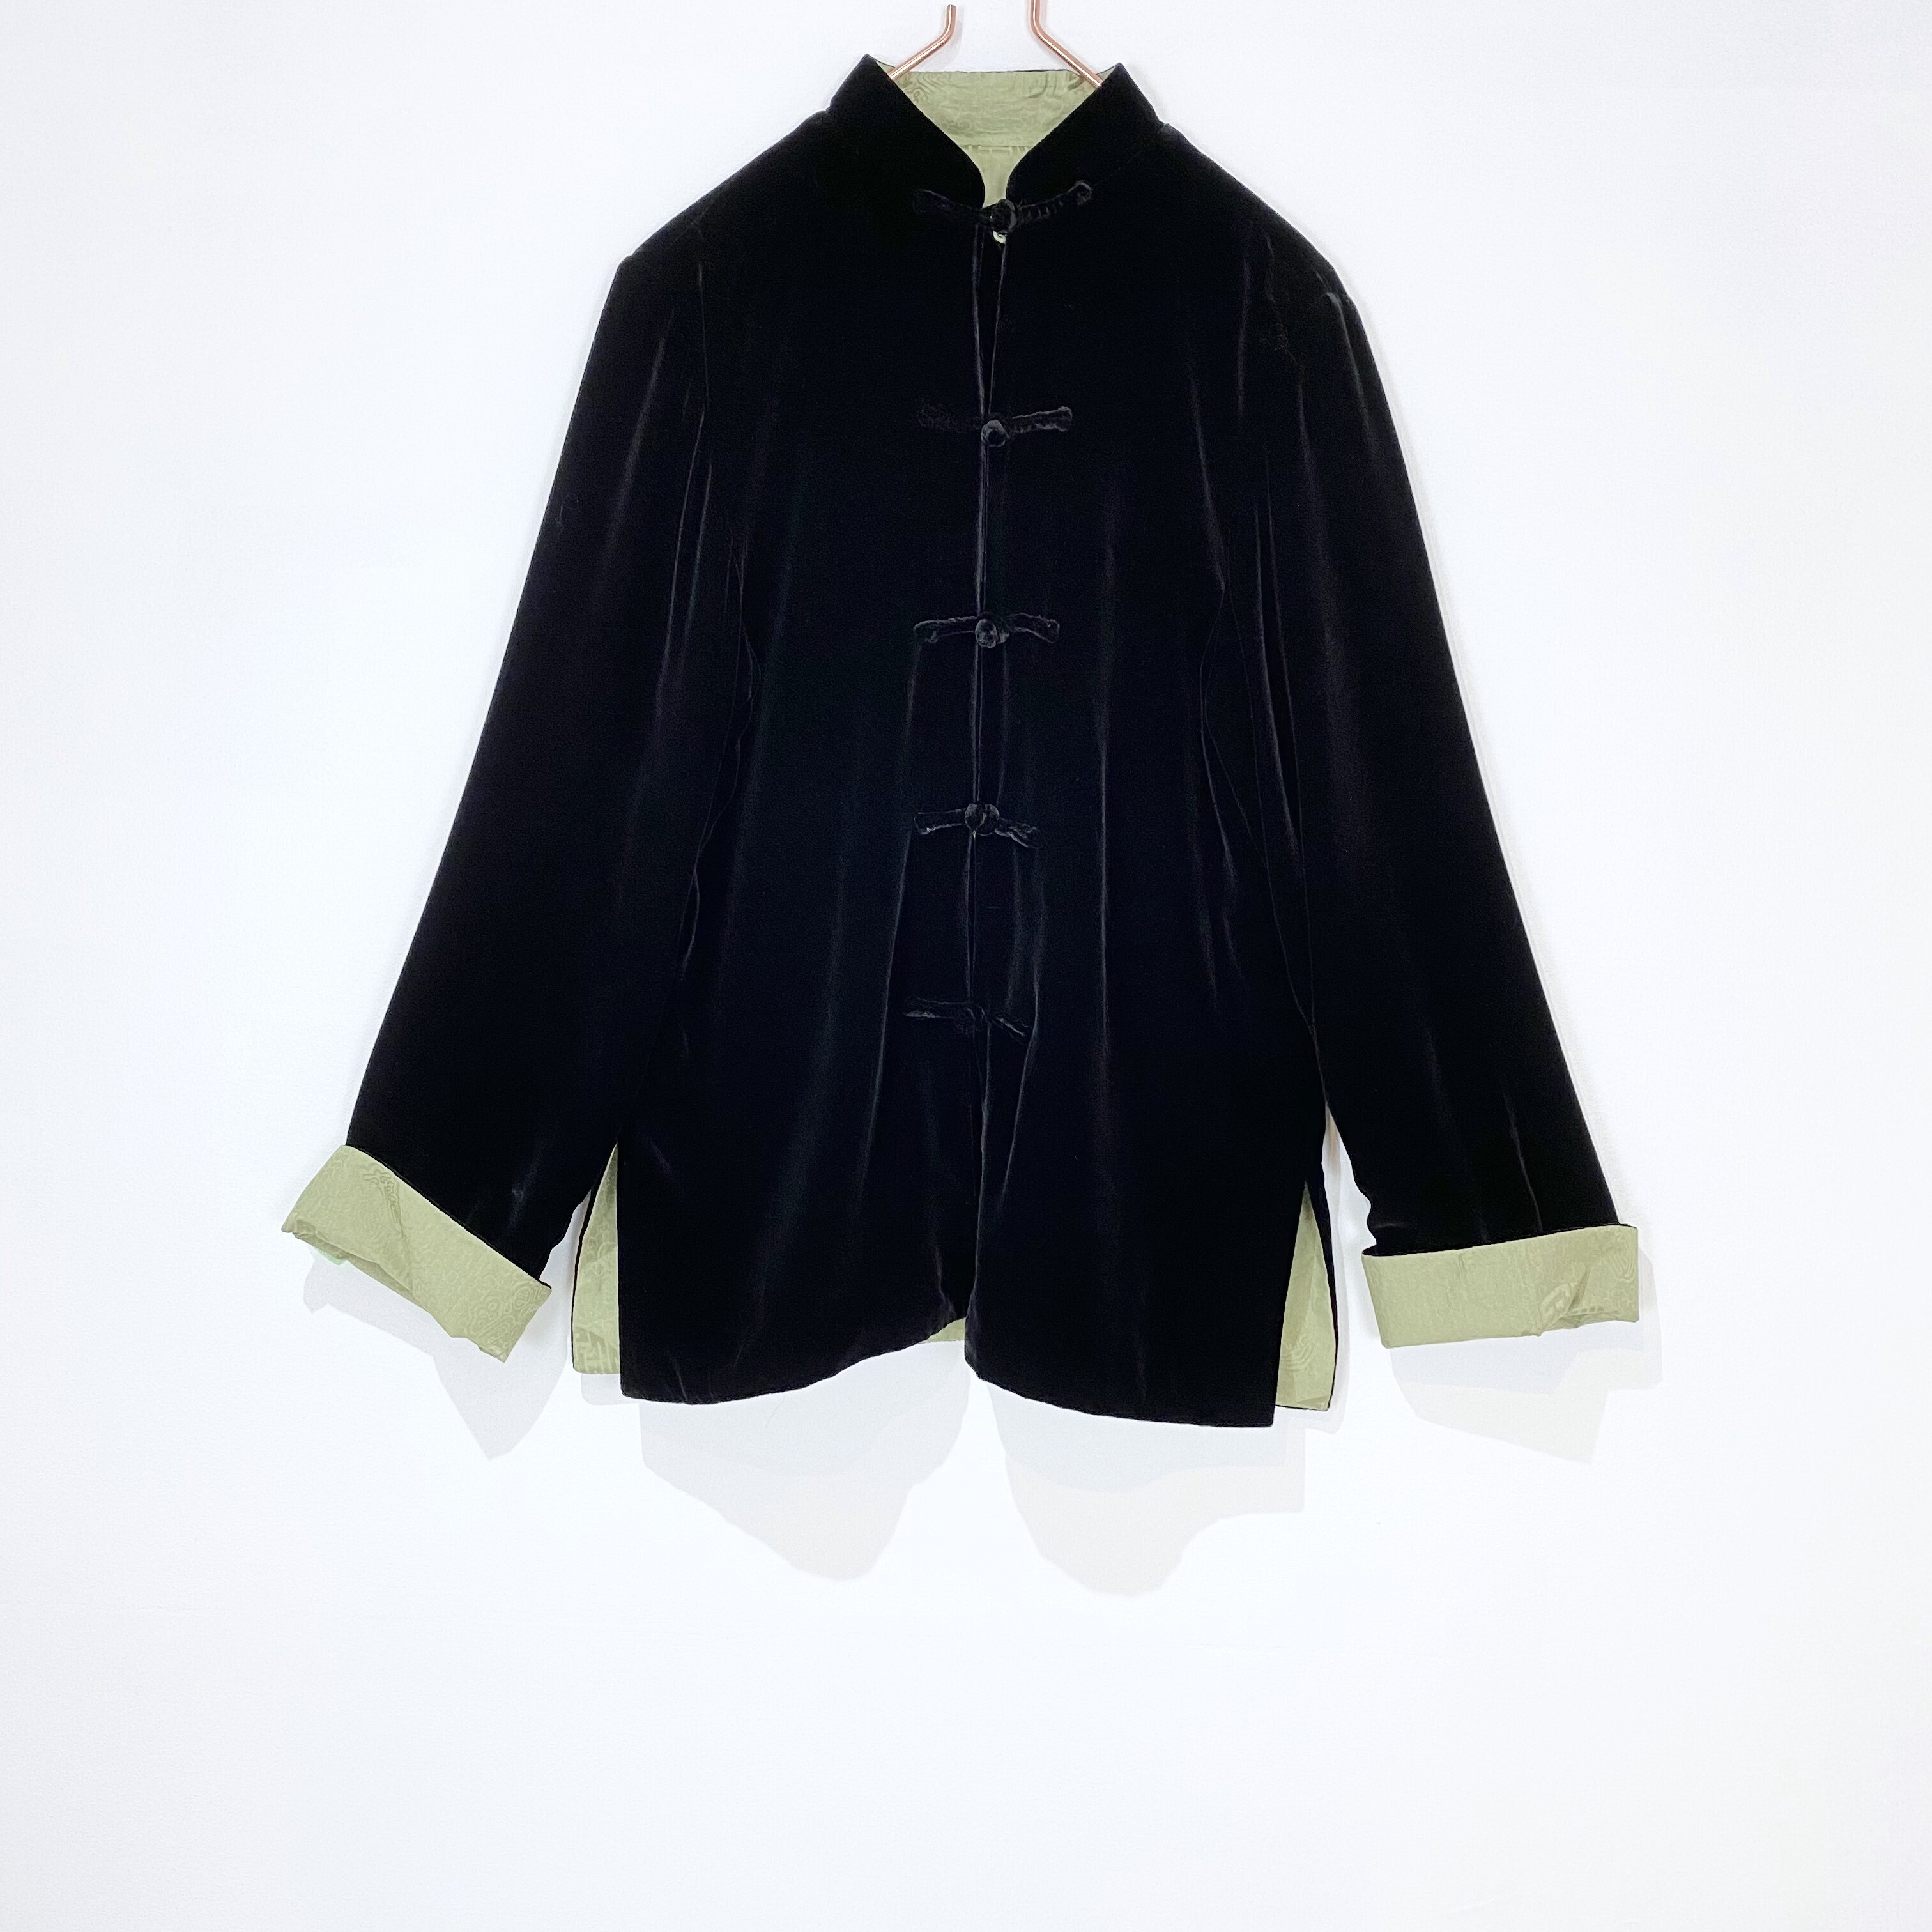 ◼︎90s Chinese style reversible jacket from U.S.A.◼︎